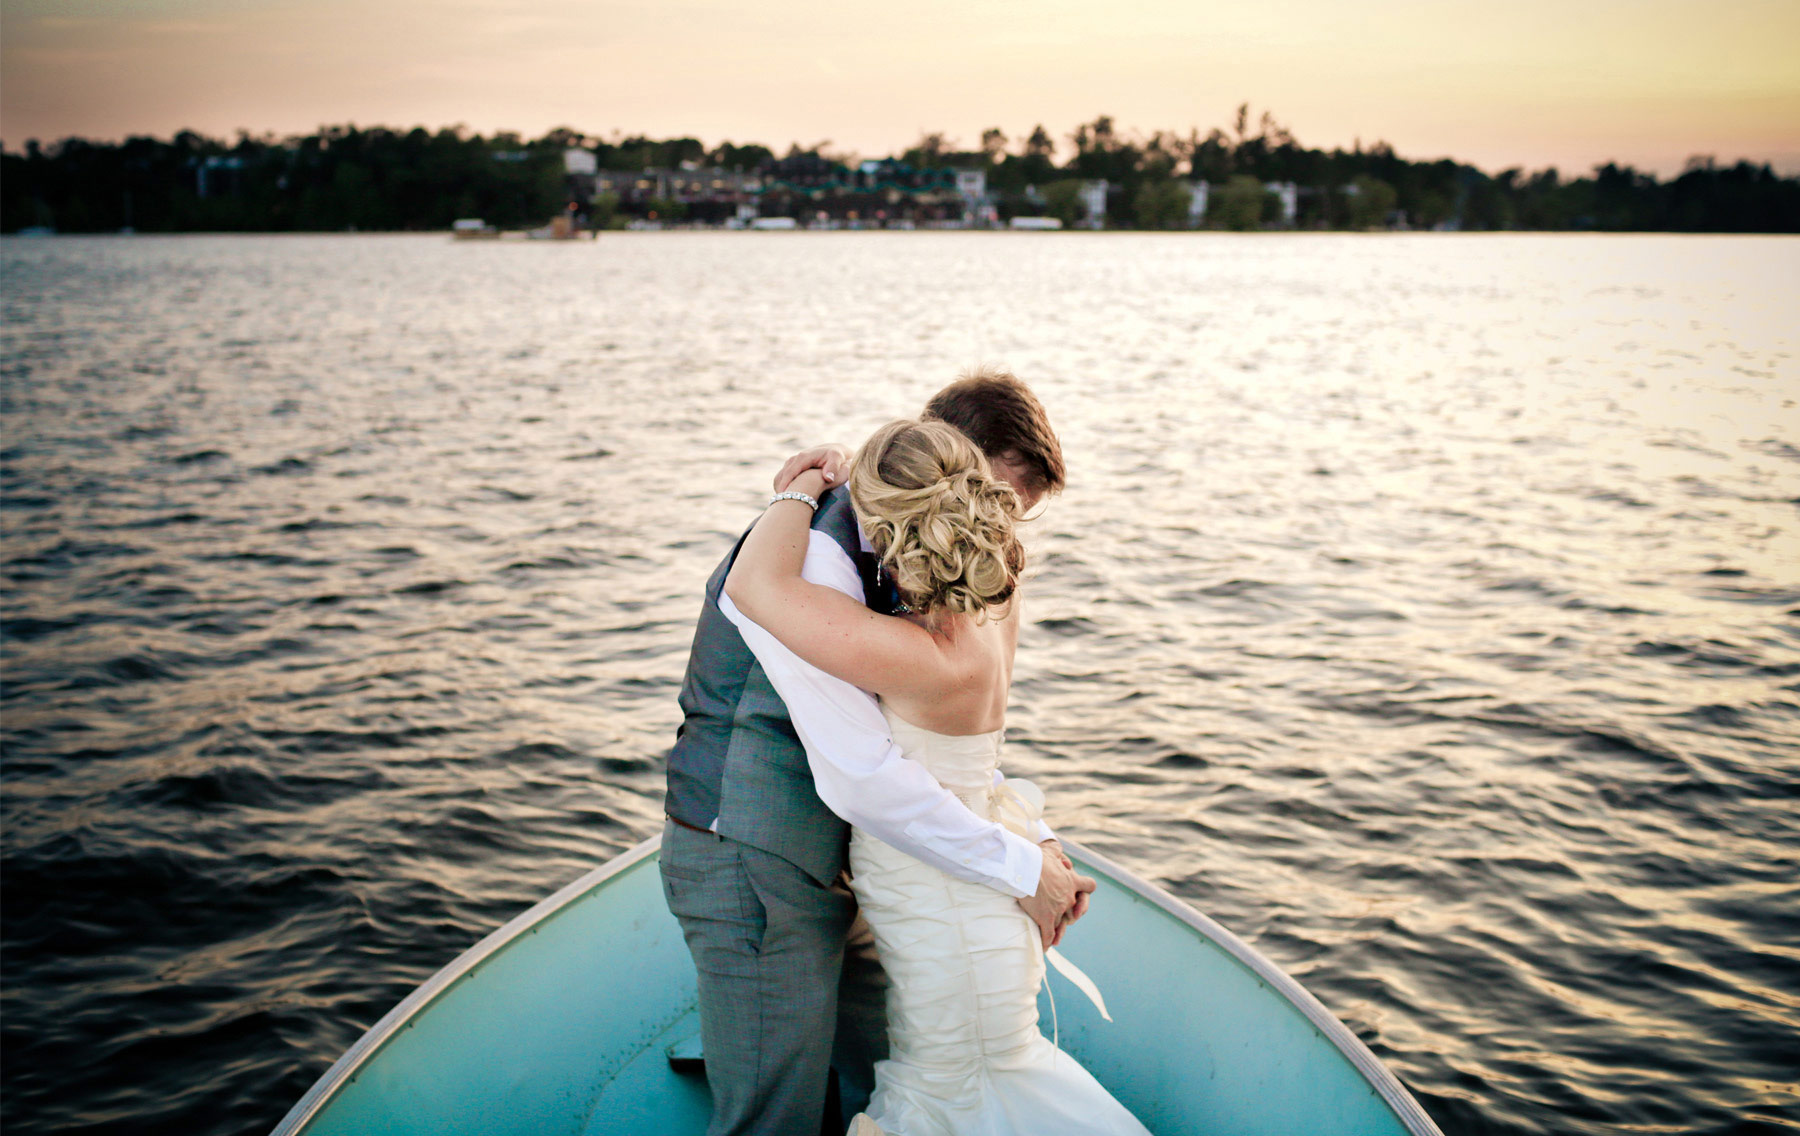 17-Brainerd-Minnesota-Wedding-Photography-by-Vick-Photography-Craguns-Resort-Lake-Boat-Lucy-&-Matt.jpg